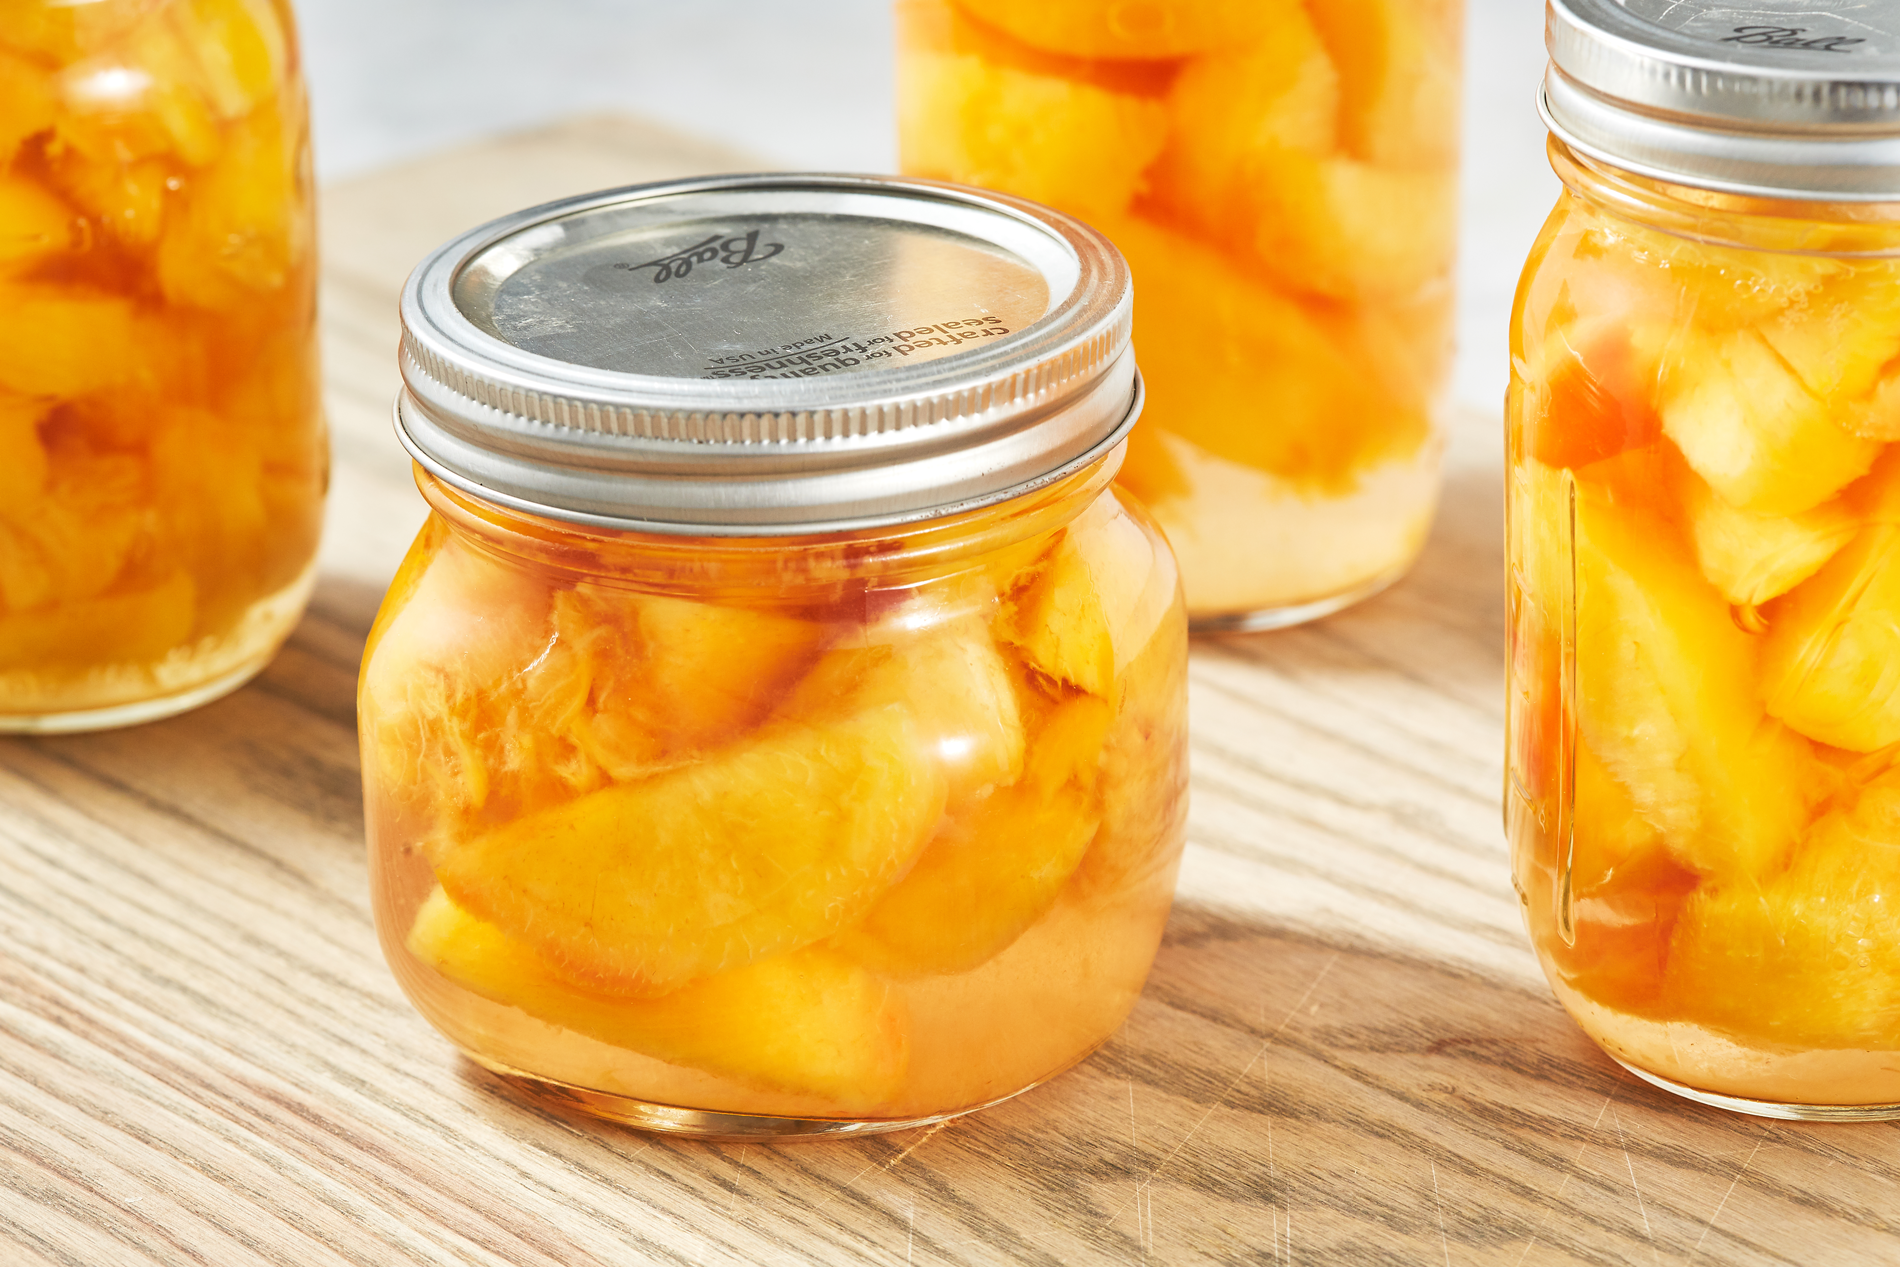 https://hips.hearstapps.com/hmg-prod.s3.amazonaws.com/images/delish-190618-how-to-can-peaches-339-landscape-pf-1561585080.png